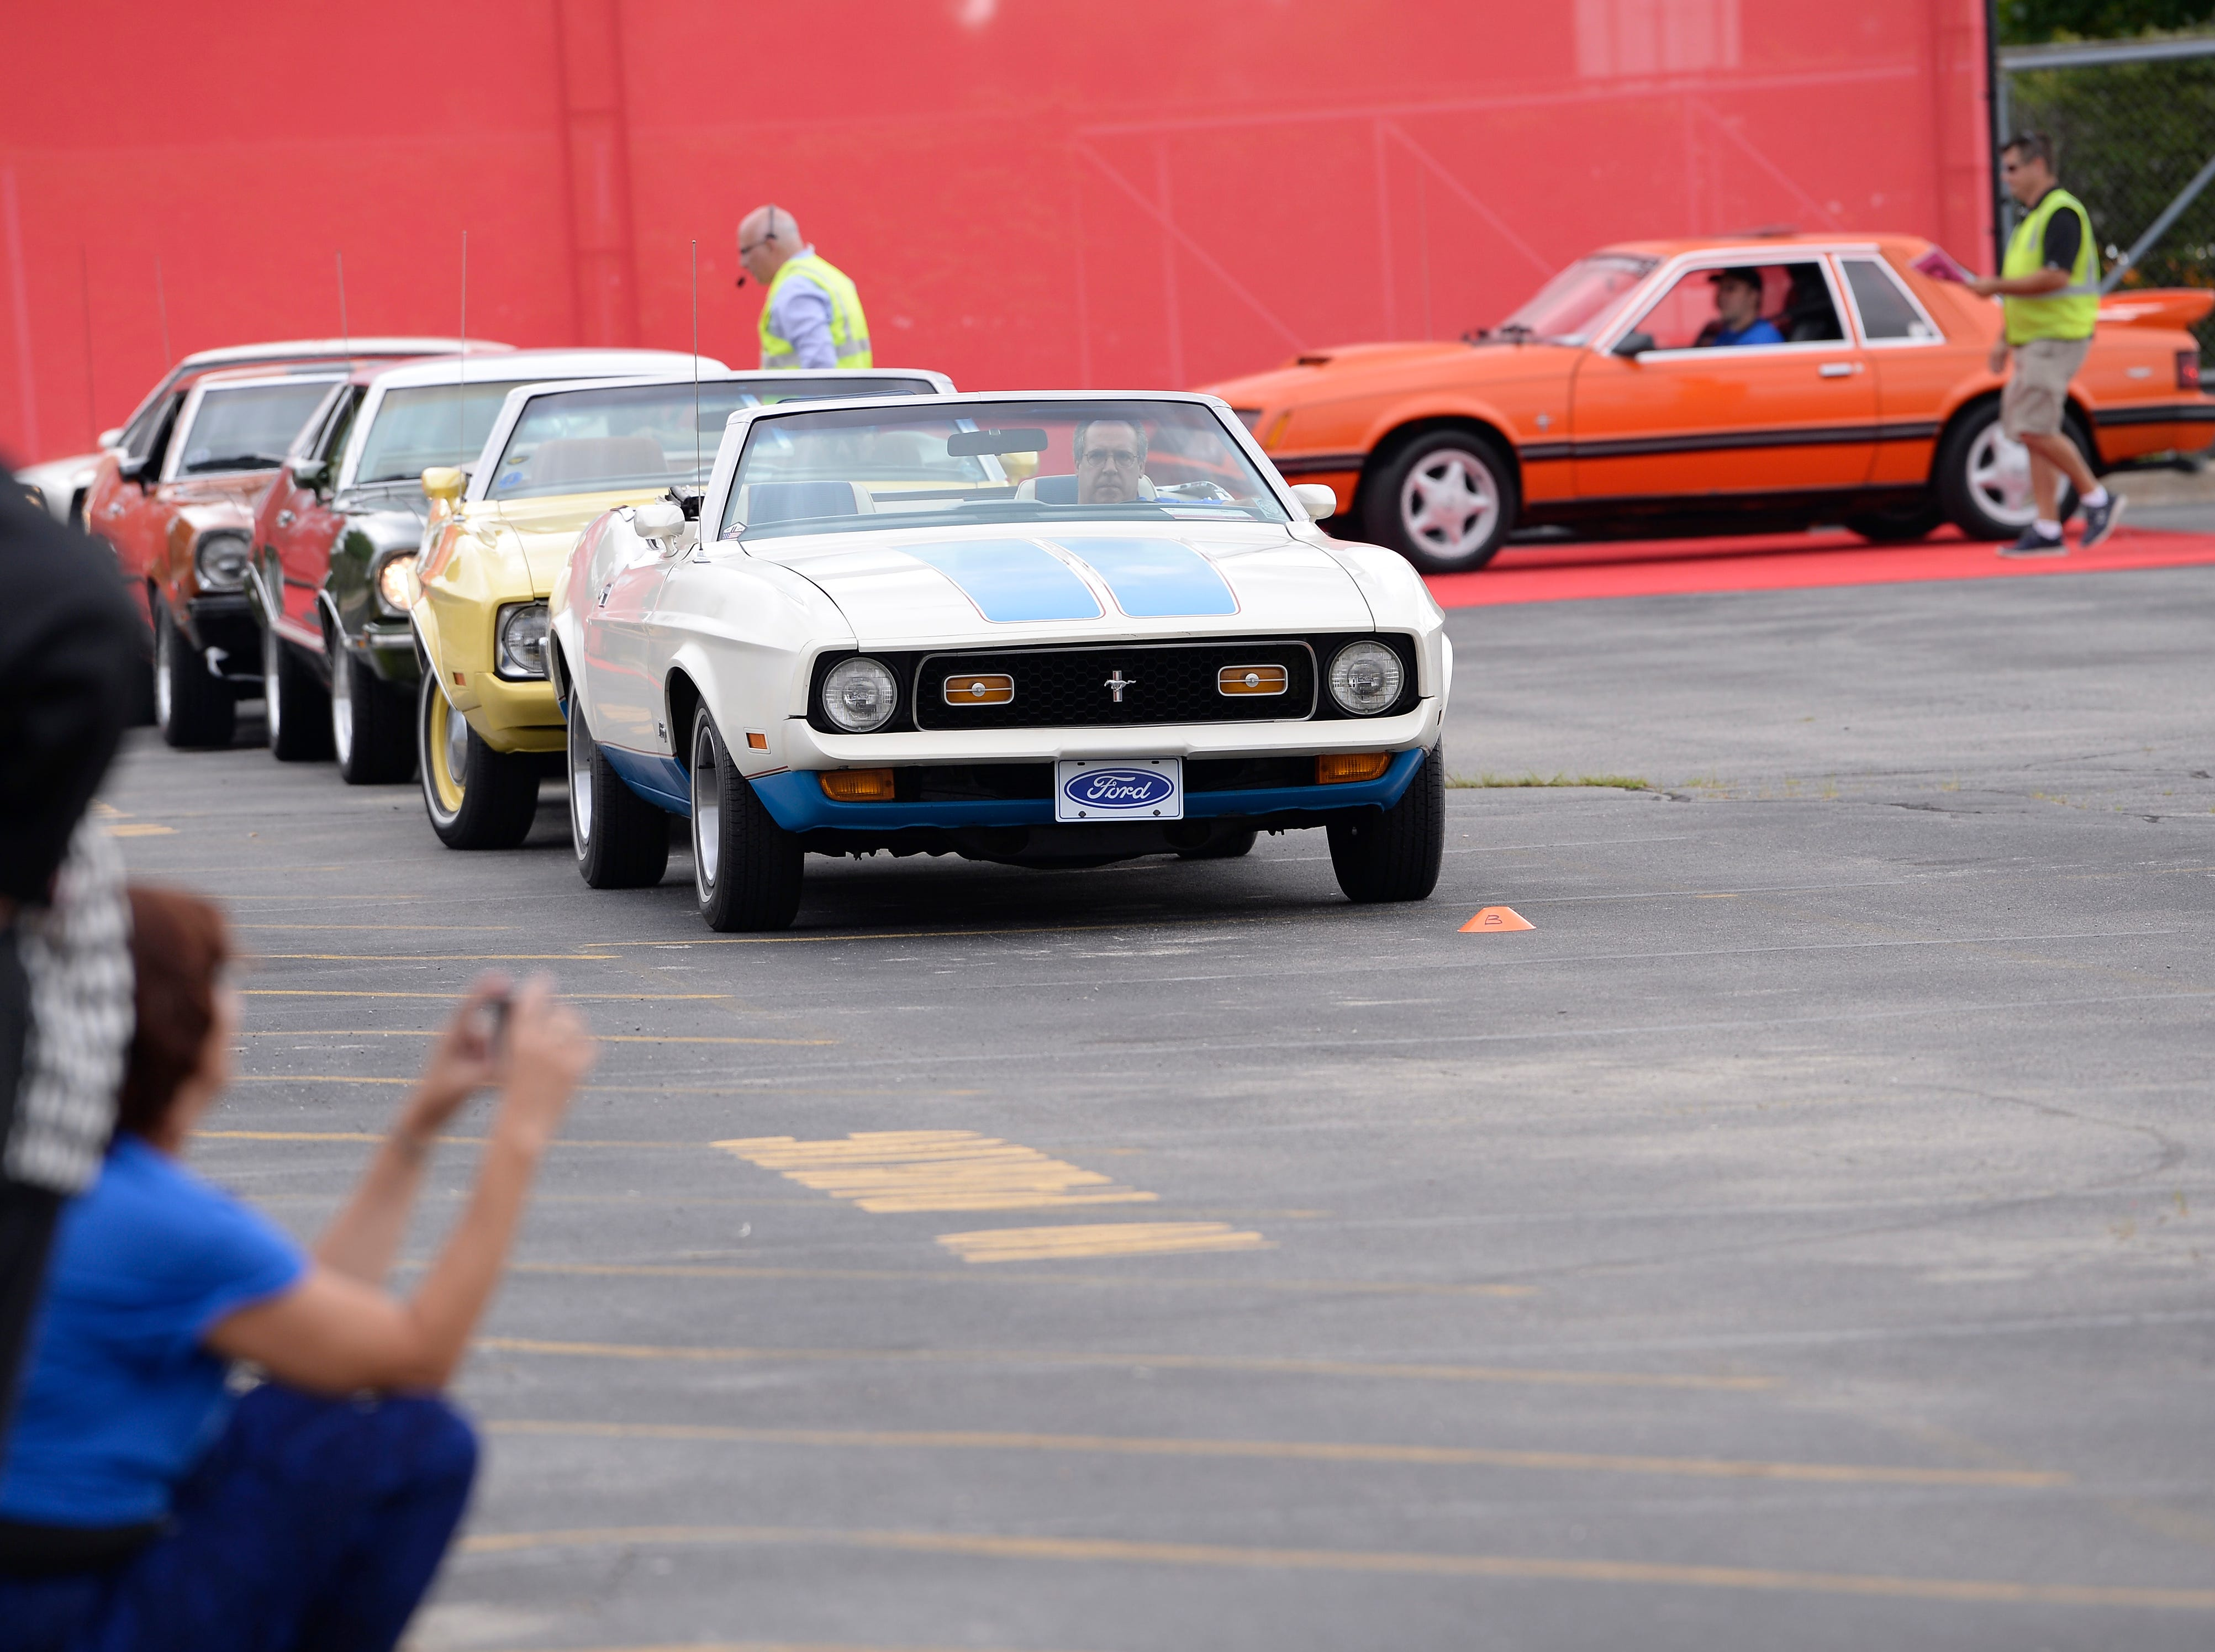 A 1972 Mustang waits in line to make a formation to spell out 10 million.